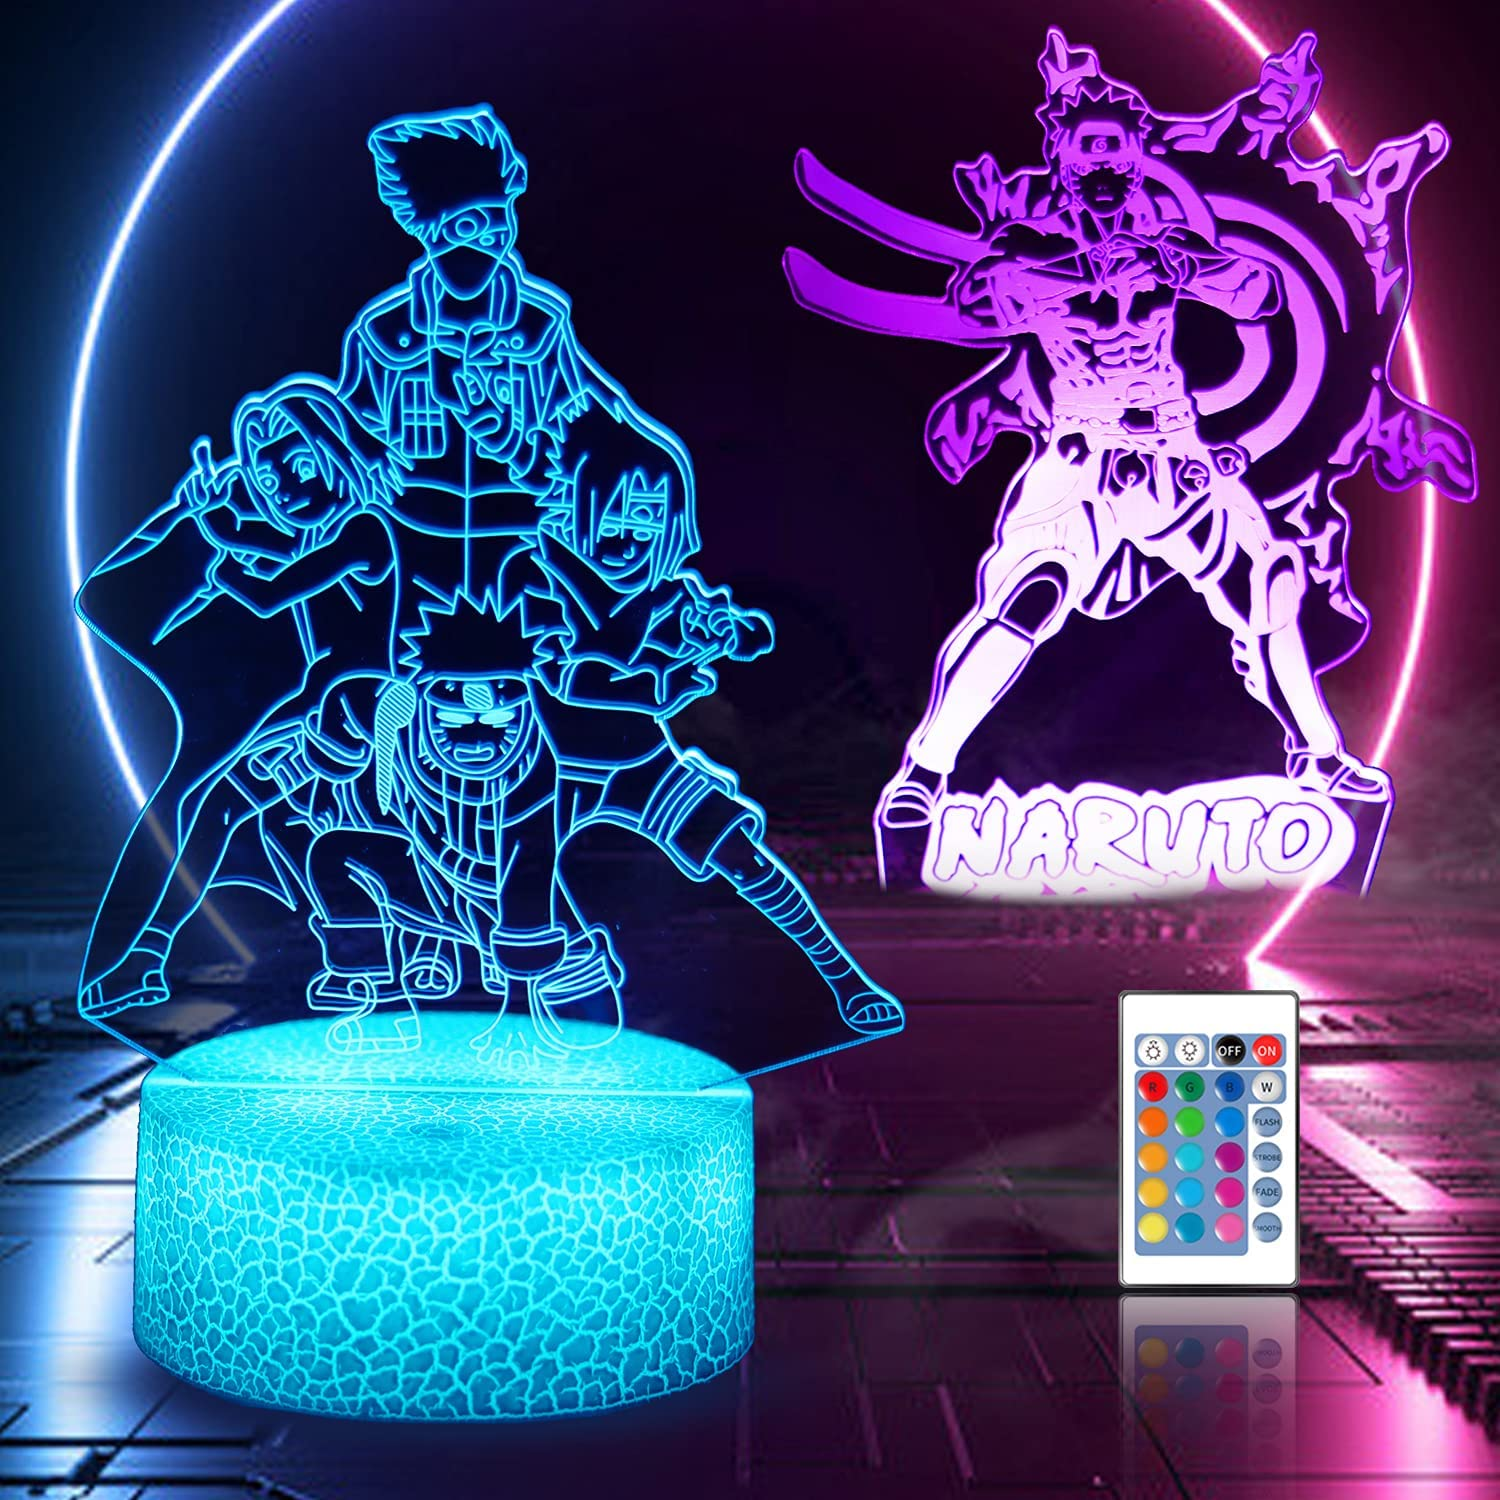 3D Night Light 3D Anime Illusion Lamp and 16 Color Change Decor LED Table Lamp with Remote Control, Christmas Birthday Gifts for Boys Kids Room Decor